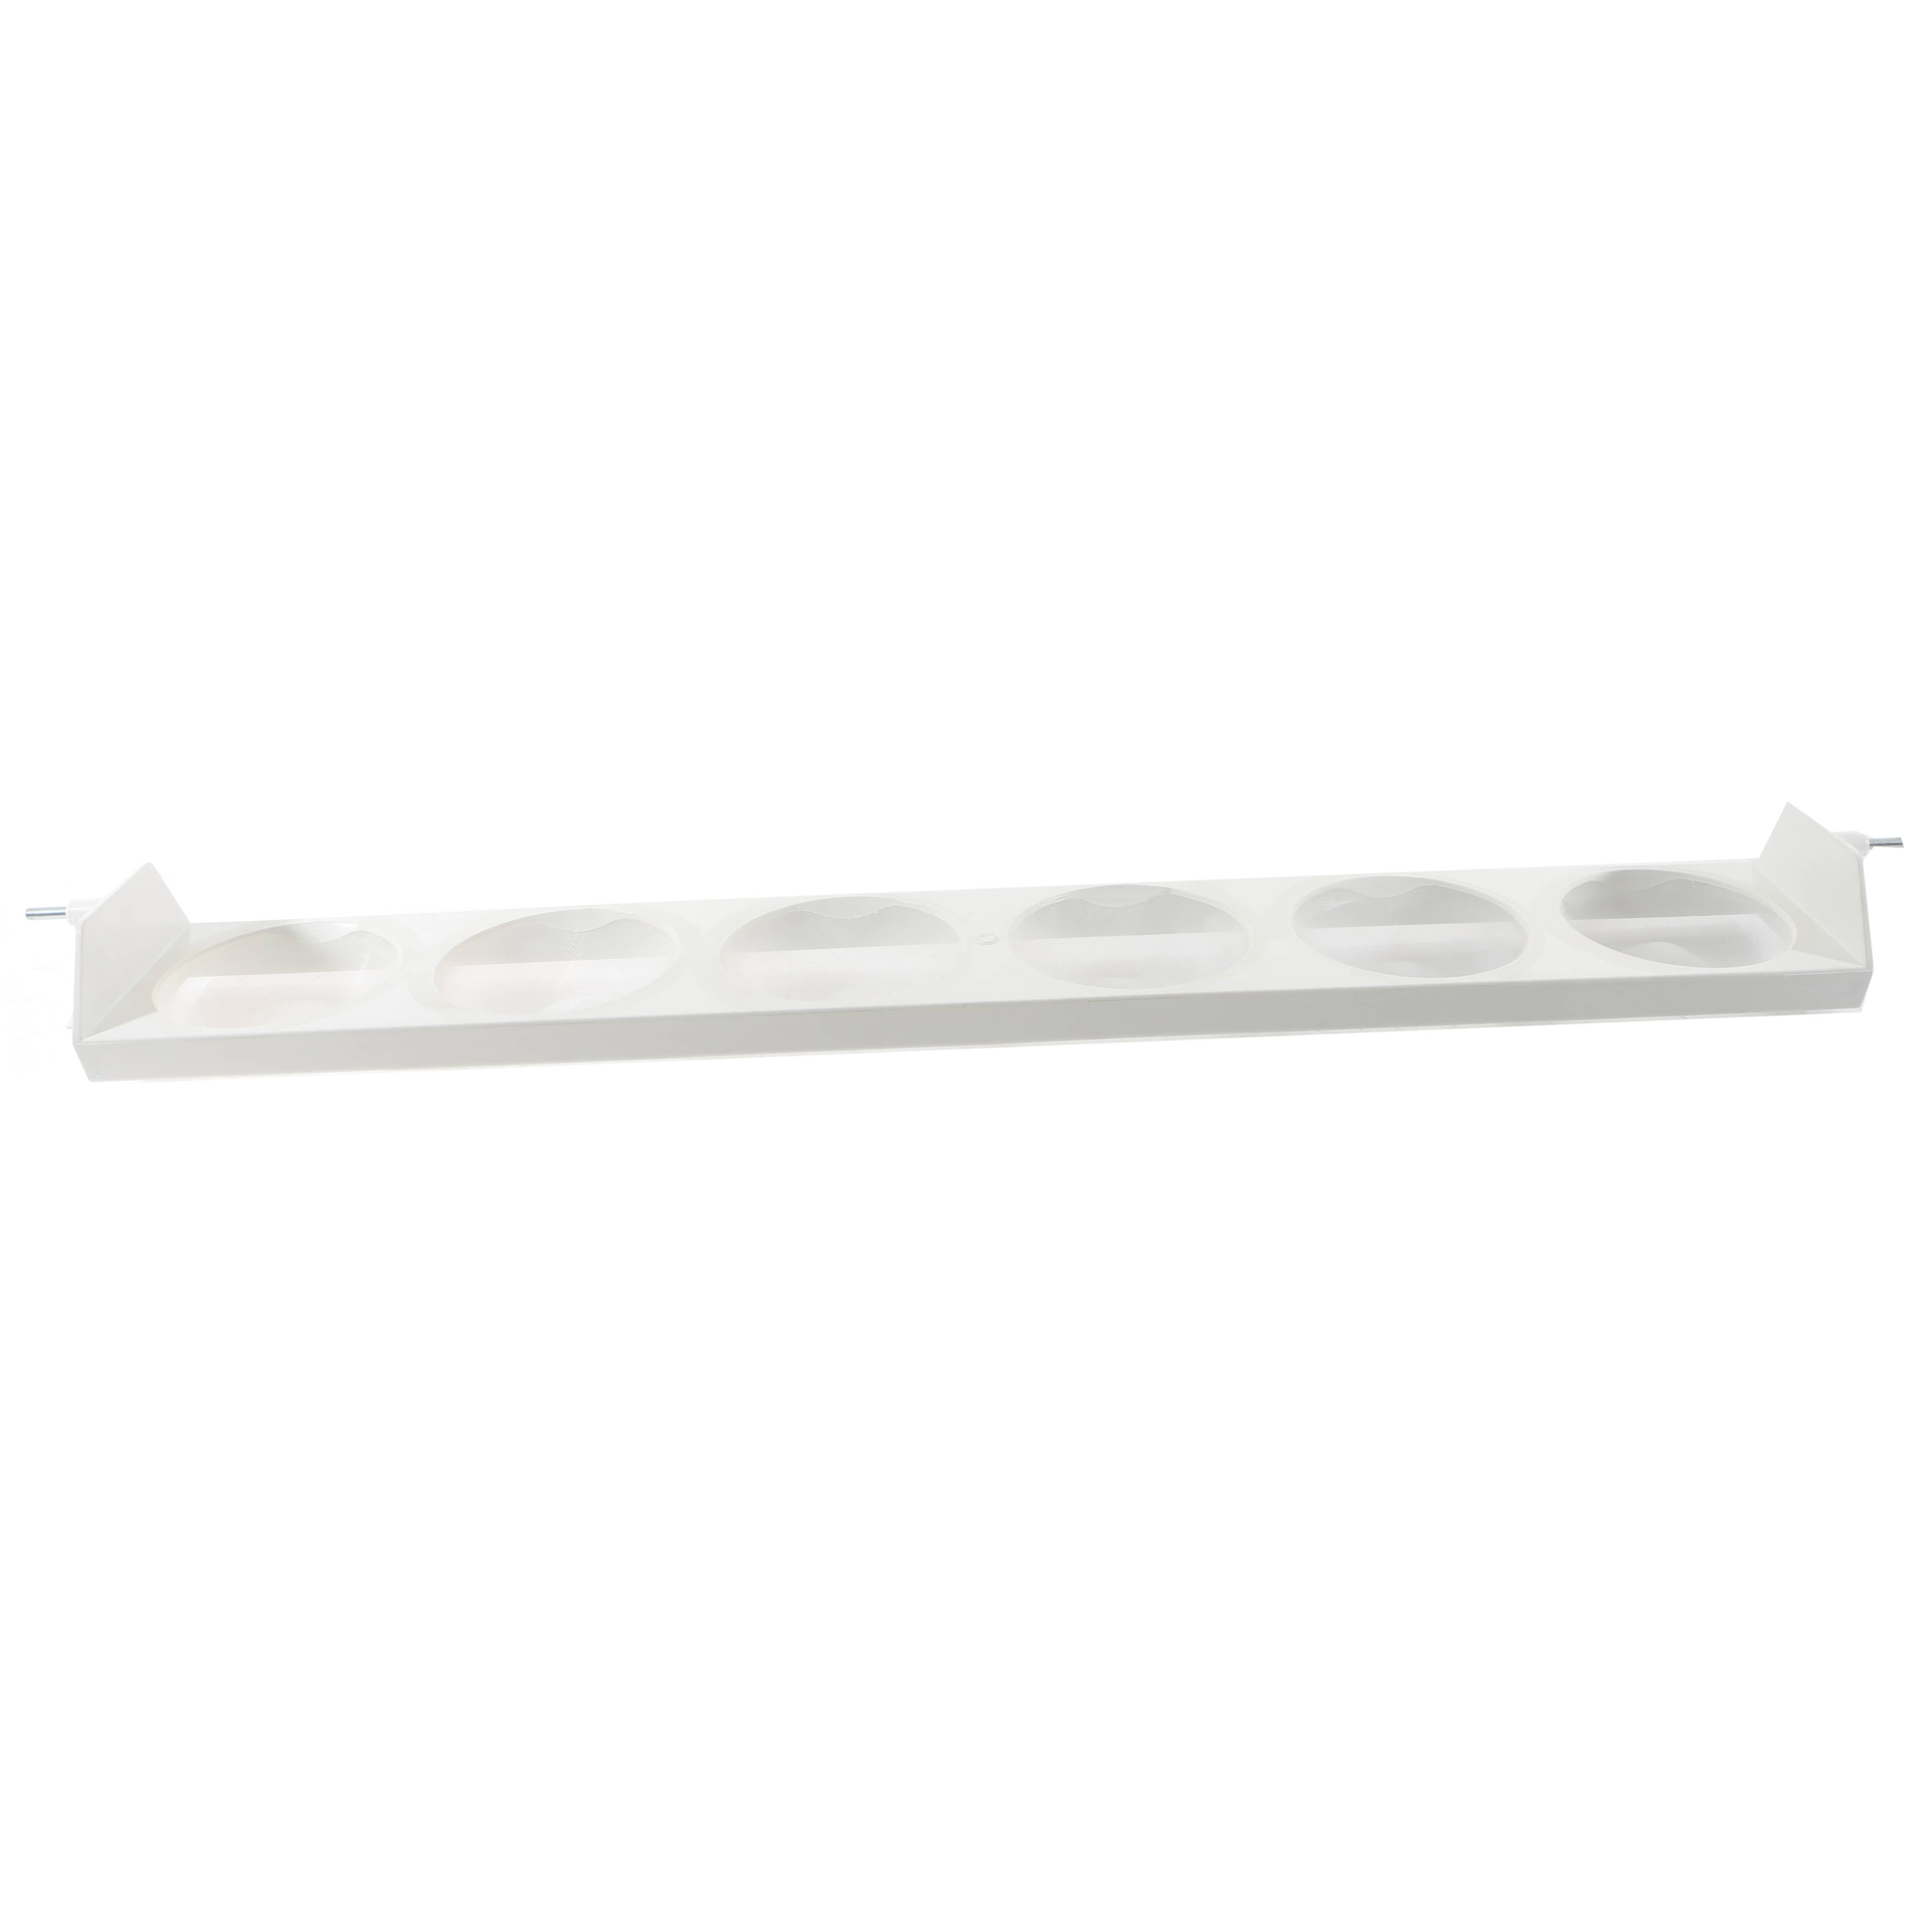 Adamatic00614749TRAY 6 POCKET UP TO 24 OZ COMB